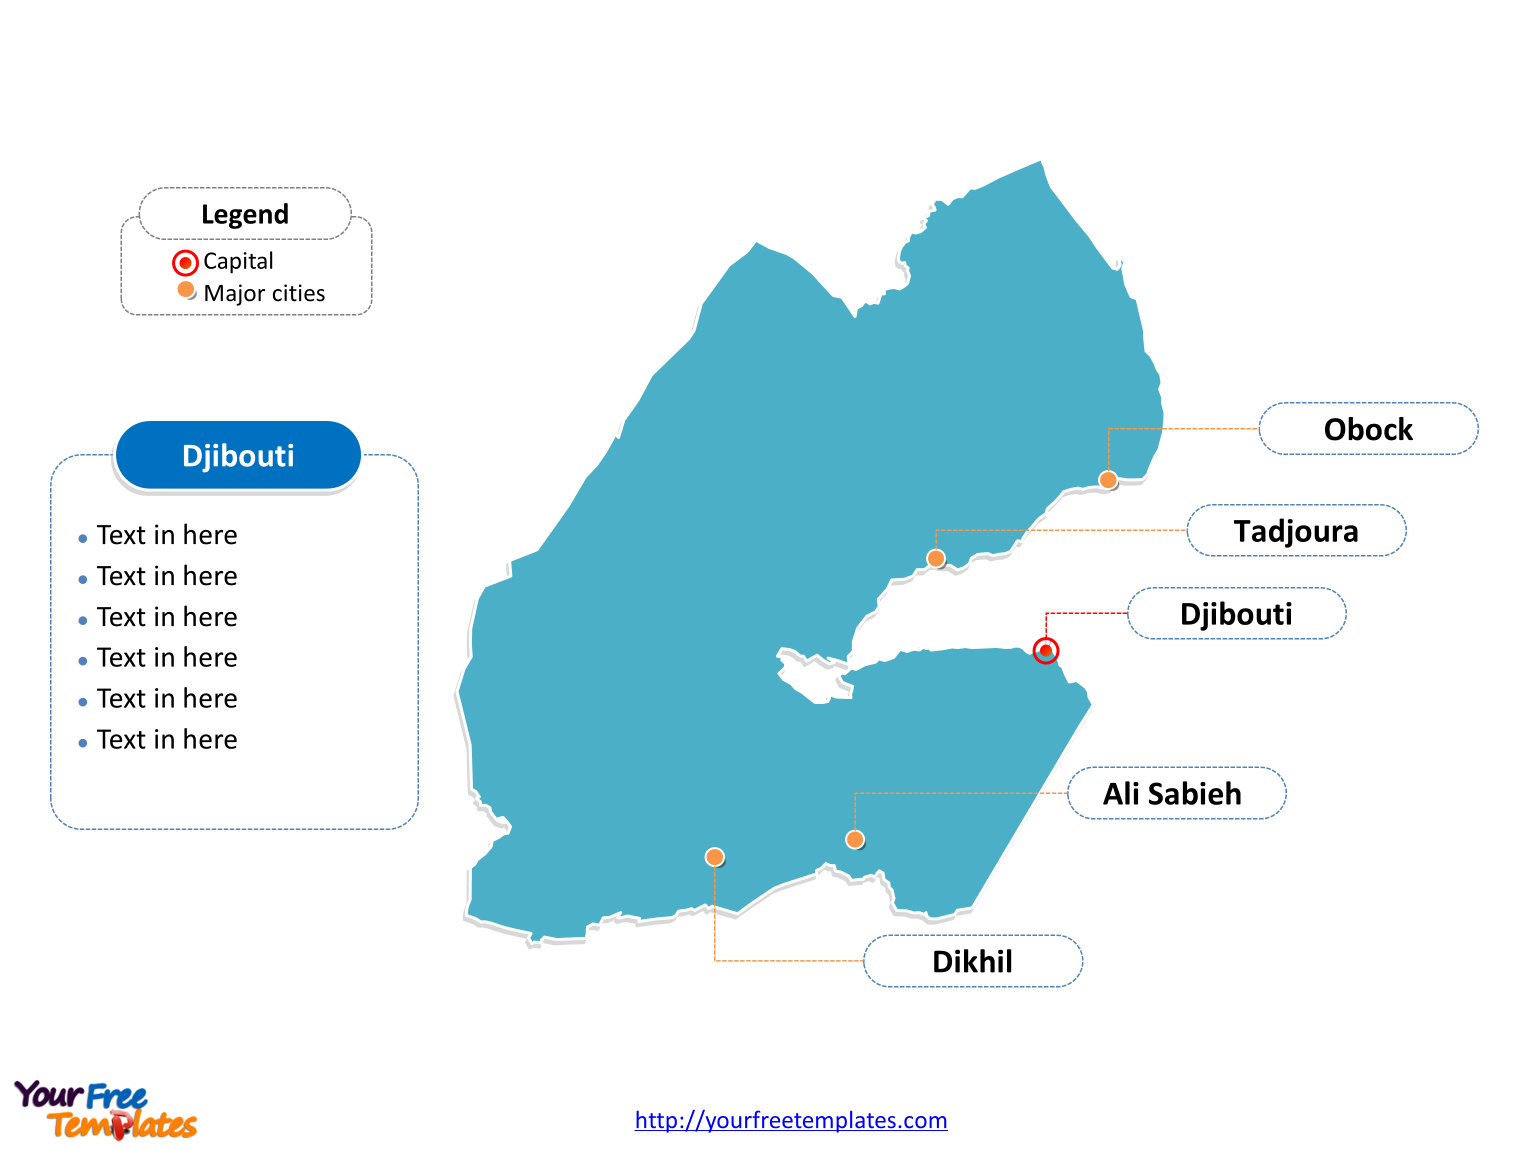 Djibouti Outline map labeled with cities